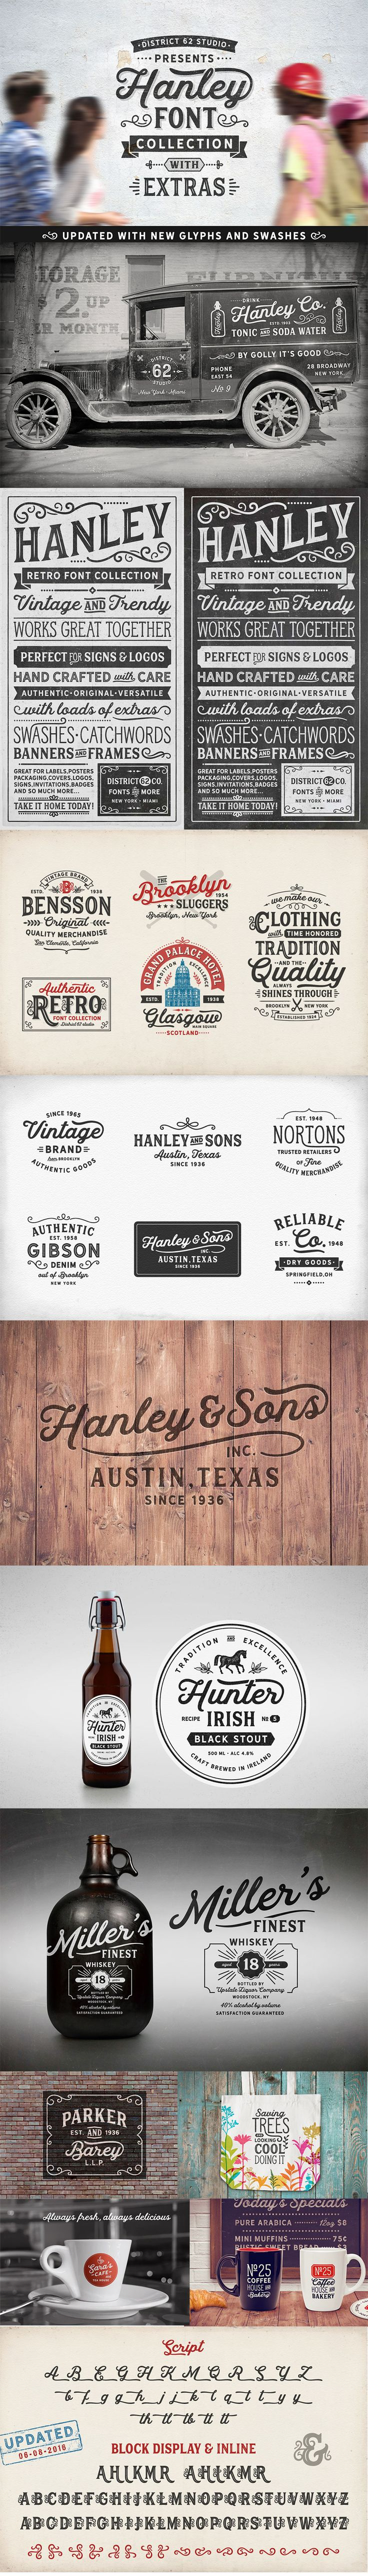 52 best hanley images on pinterest brewing beer cans and family